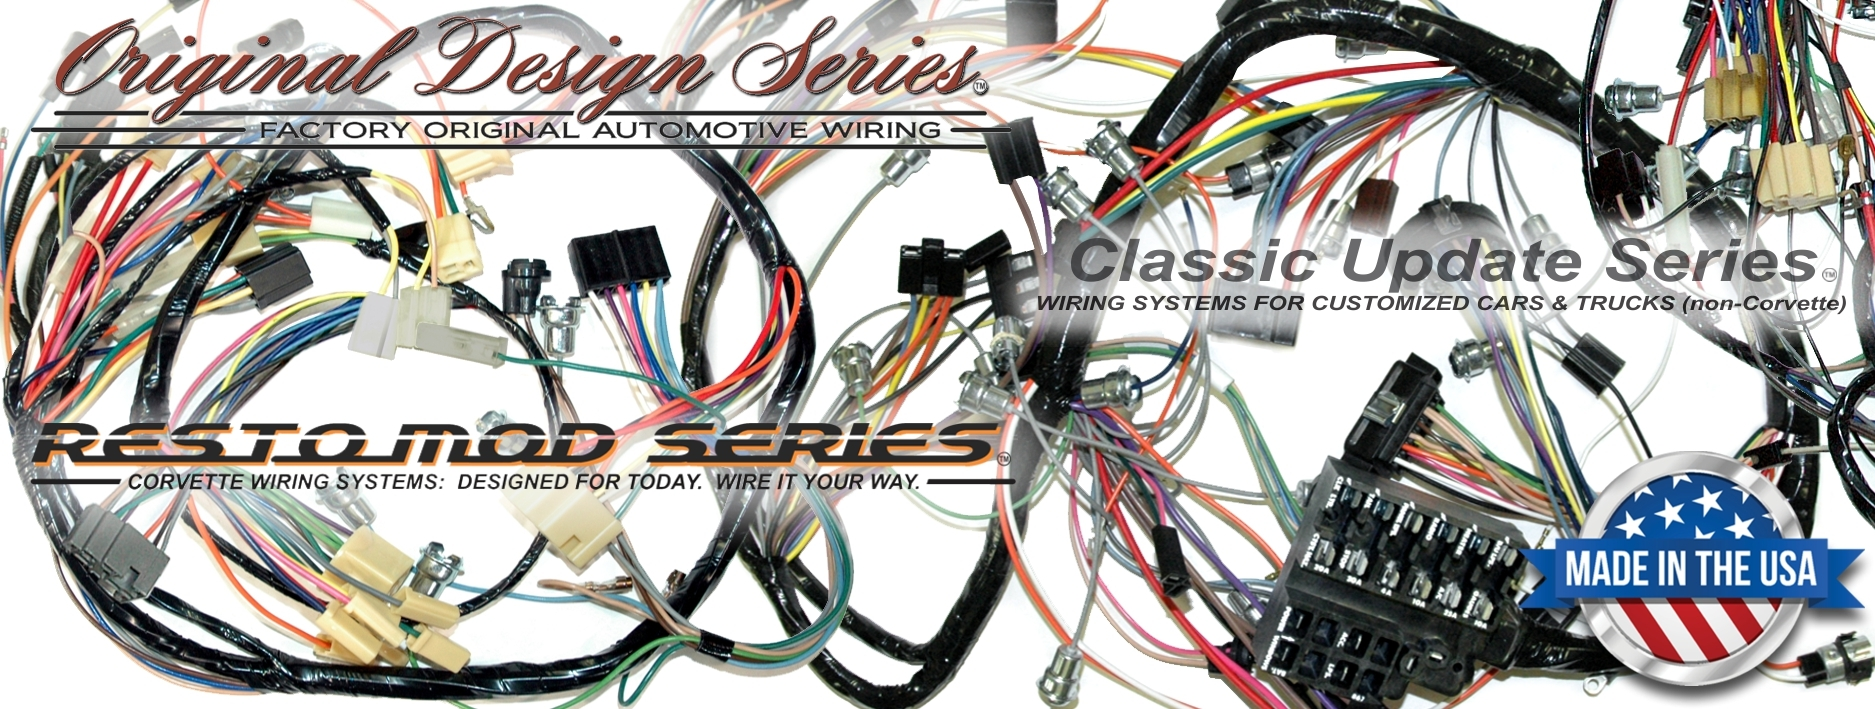 exact oem reproduction wiring harnesses and restomod wiring systems Electrical Wiring Connector individual wiring harnesses \u0026 complete wiring systems